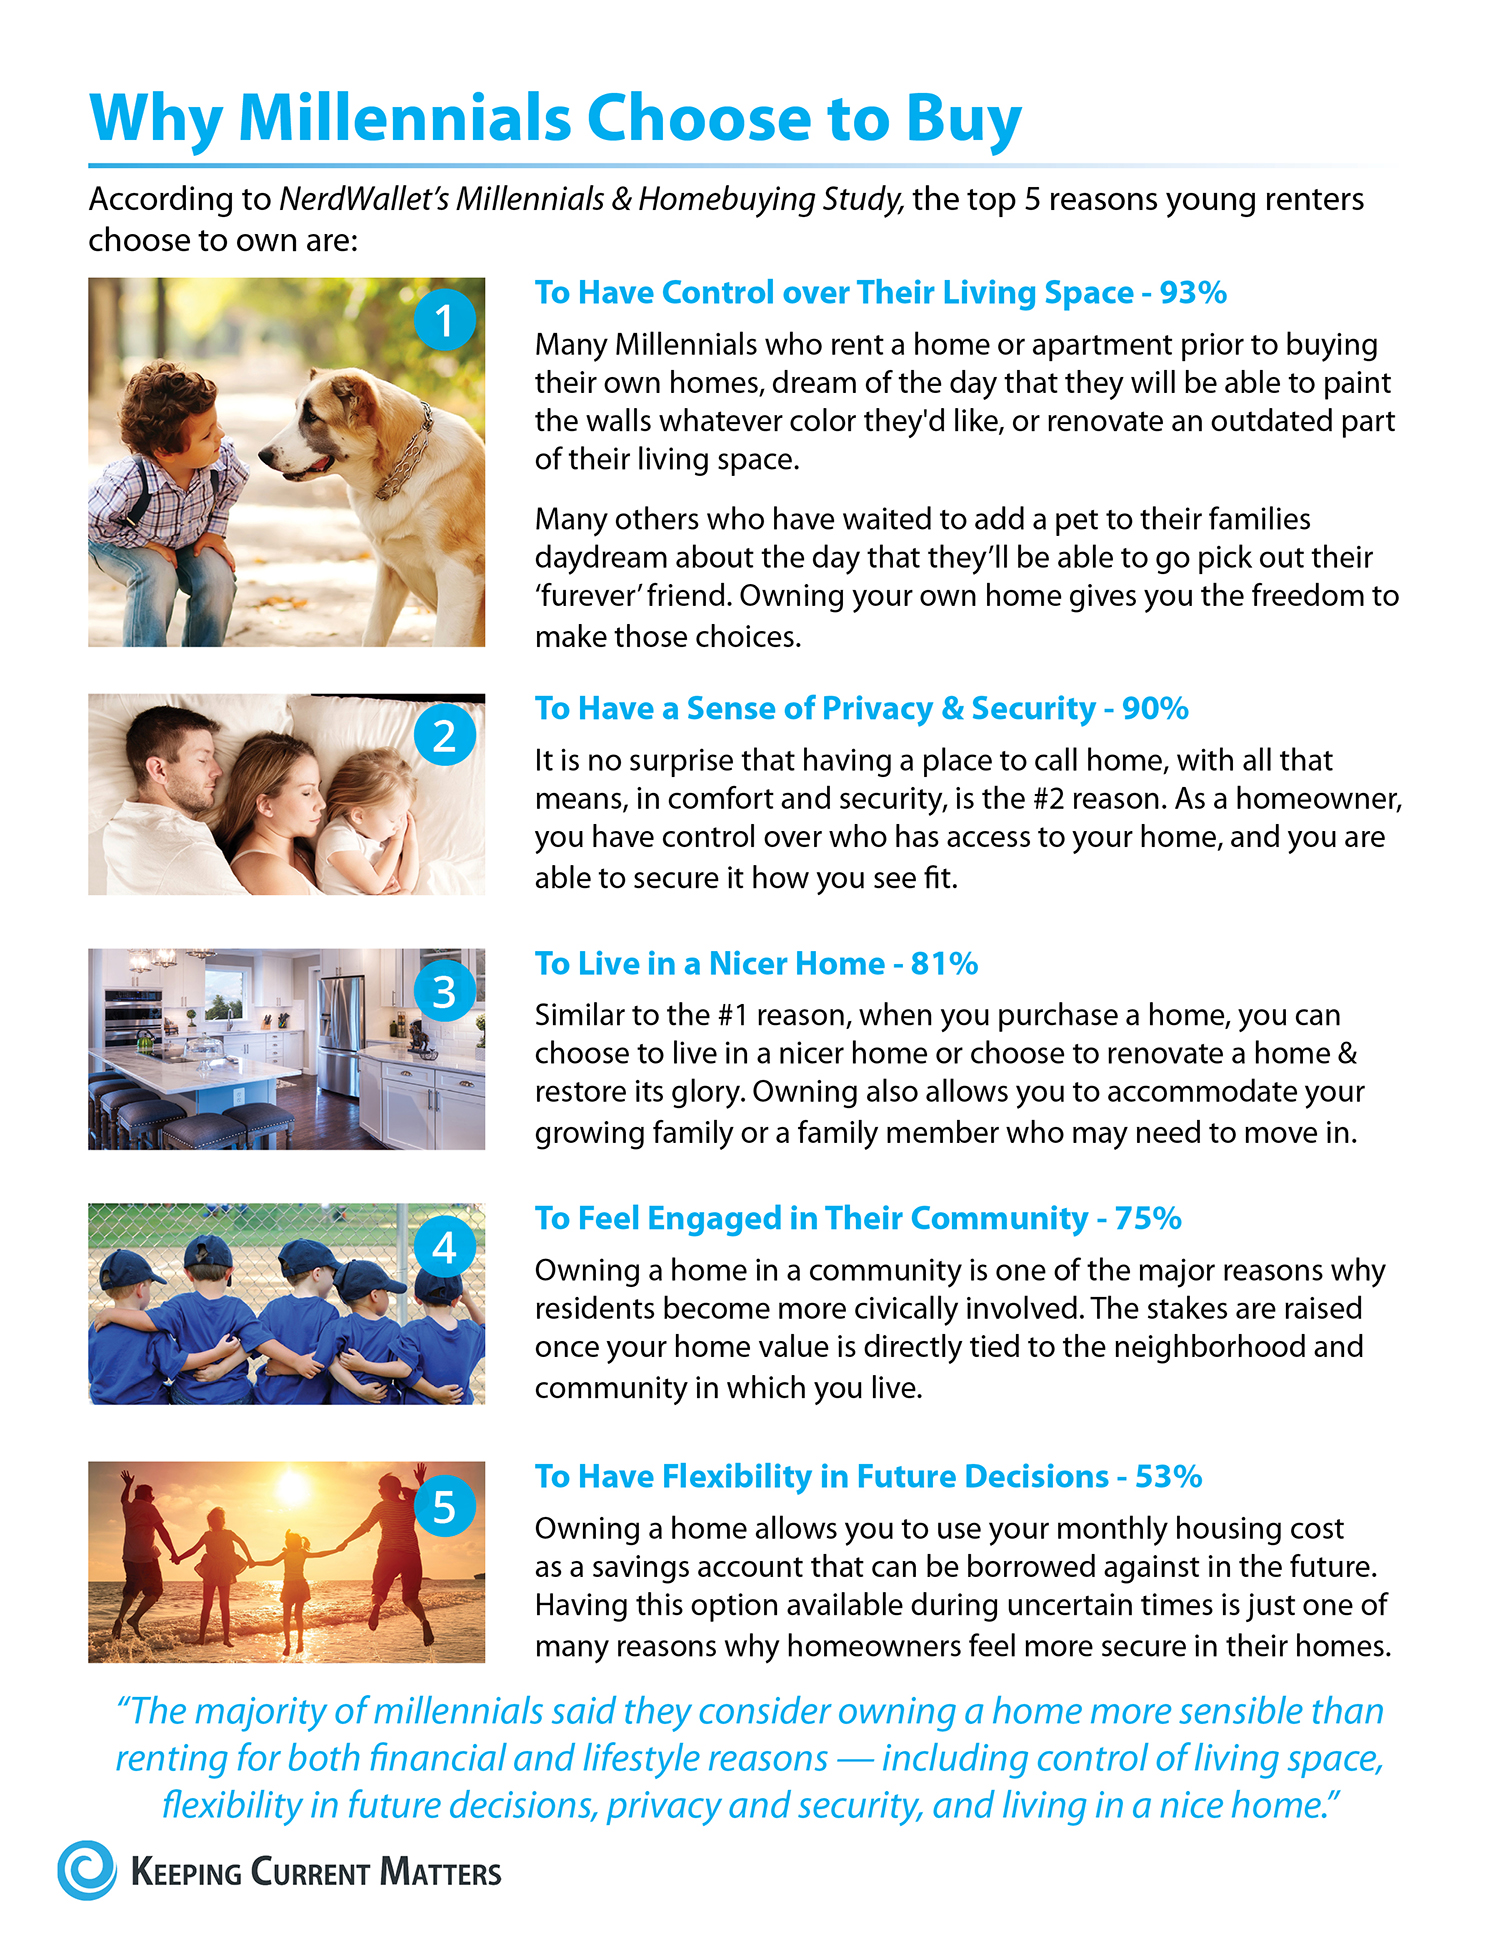 5 Reasons Why Millennials Buy a Home [INFOGRAPHIC] | Keeping Current Matters